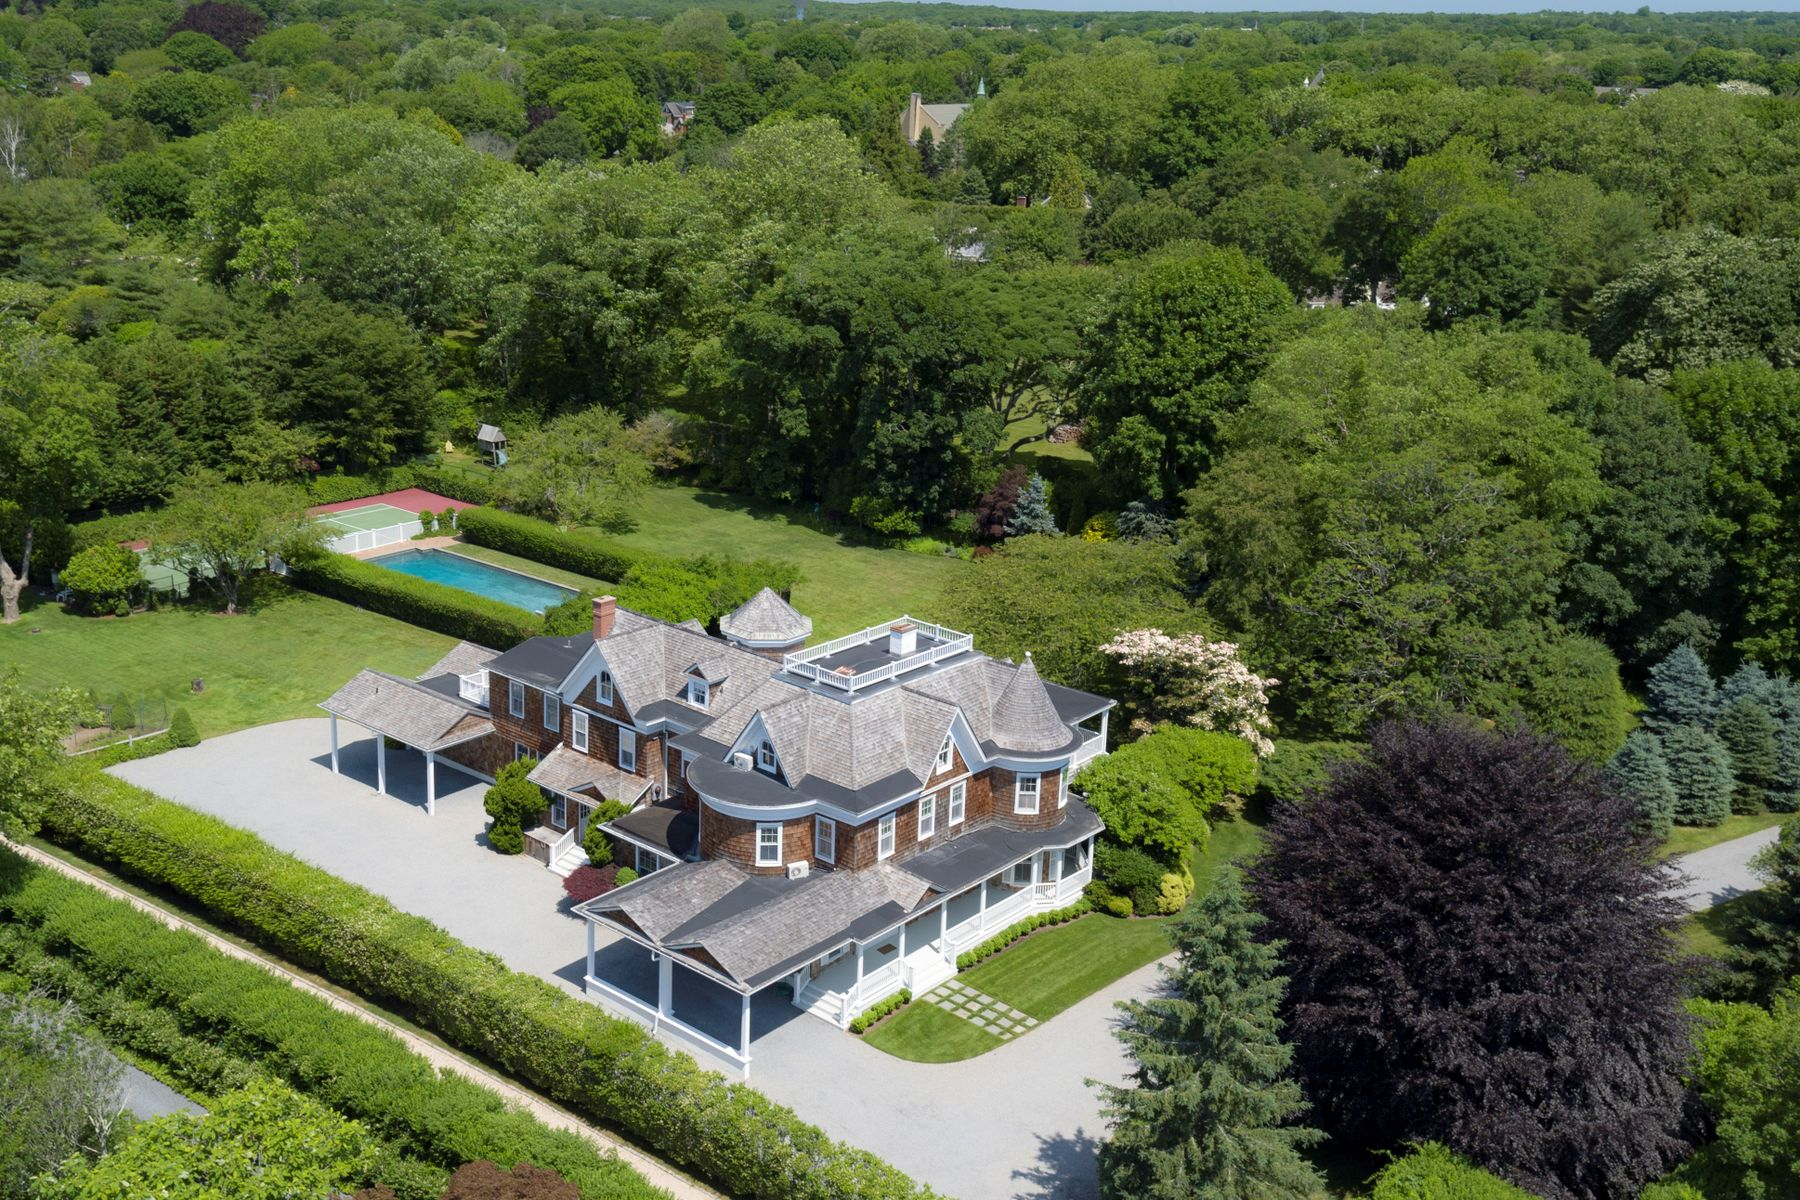 Casa Unifamiliar por un Venta en Better Than New Southampton Estate 75 First Neck Lane, Southampton Estate Section, Southampton, Nueva York, 11968 Estados Unidos